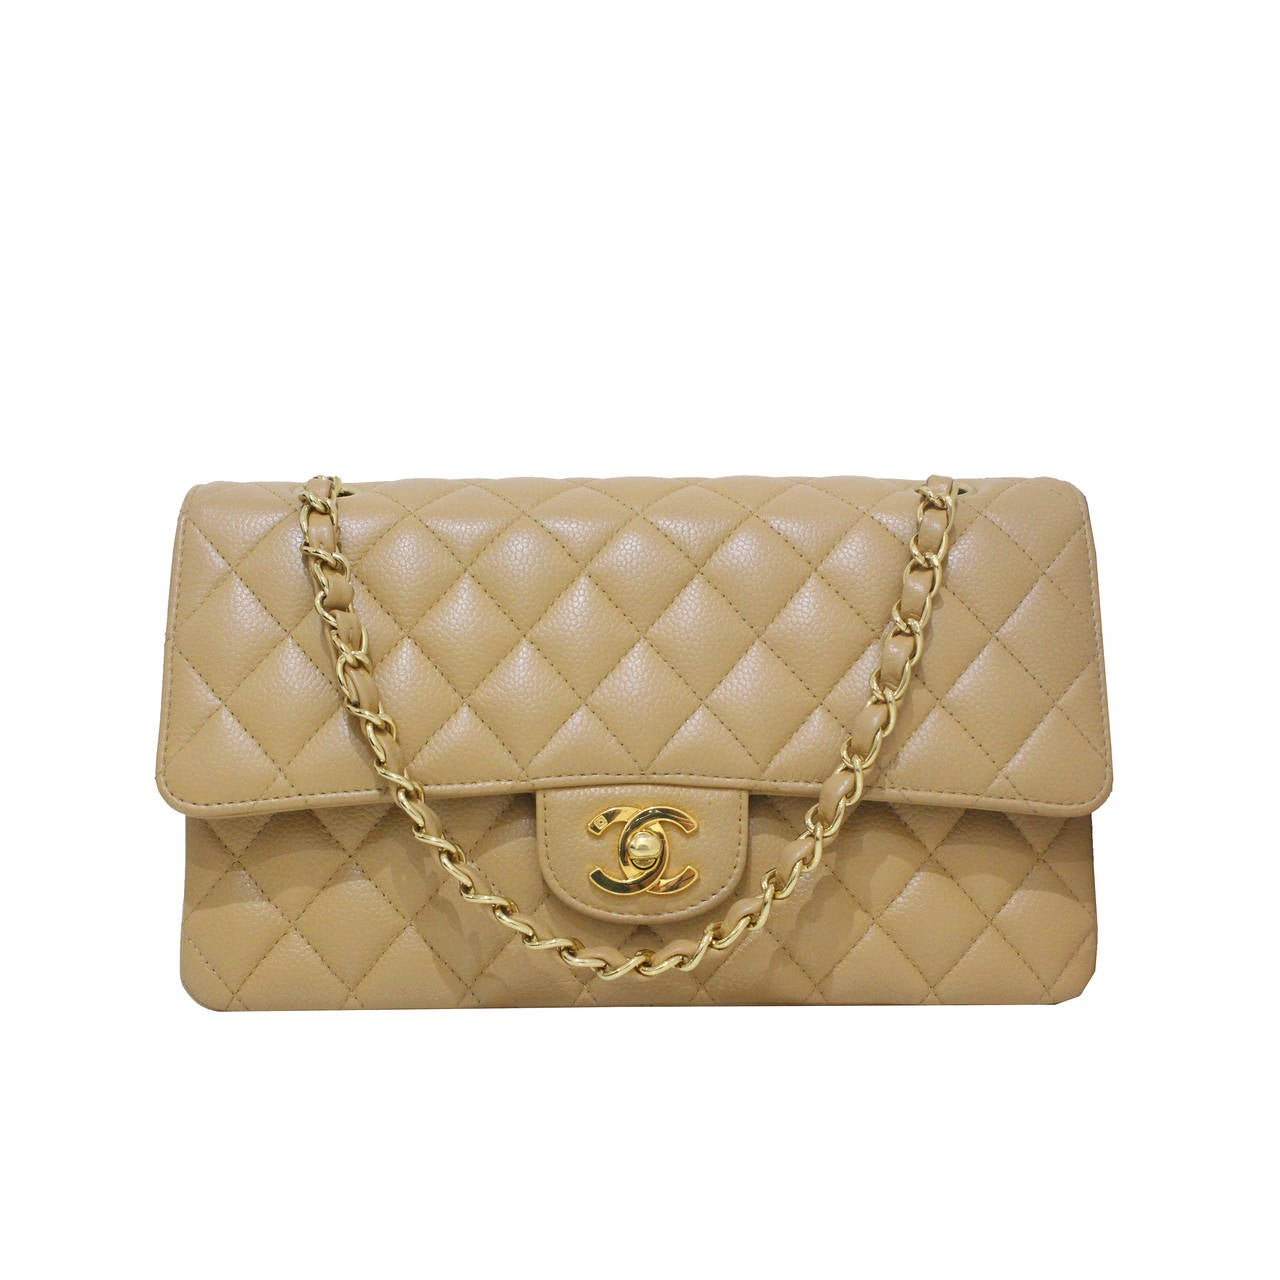 42efa8116f05 Chanel Nude Quilted Caviar Classic Medium Double Flap Bag, Excellent  Condition For Sale